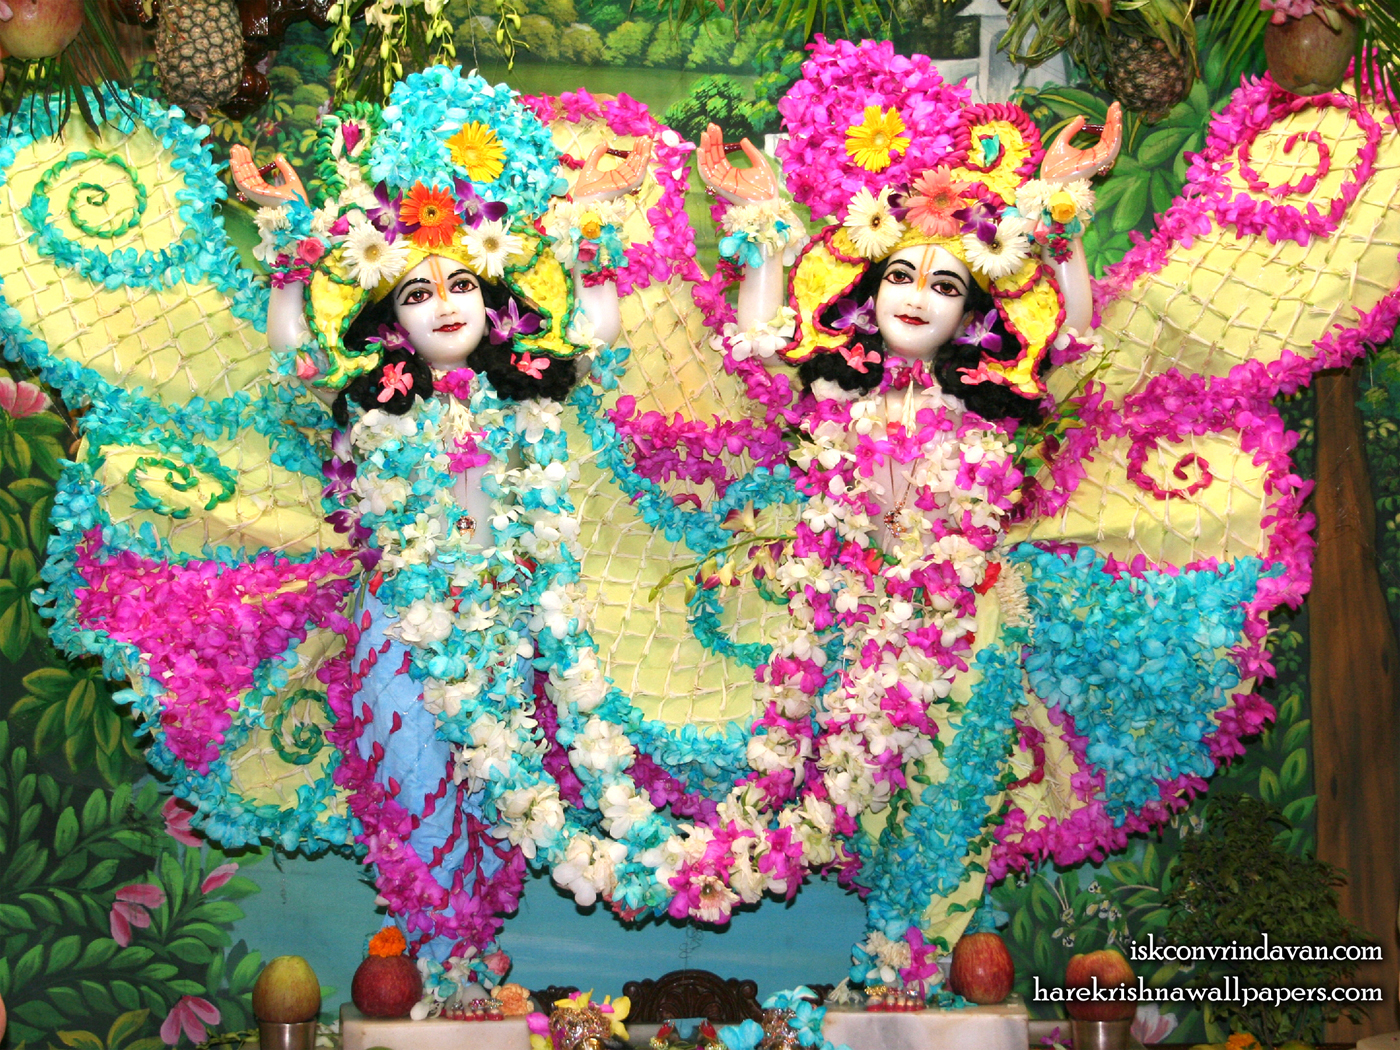 Sri Sri Gaura Nitai Wallpaper (087) Size 1400x1050 Download